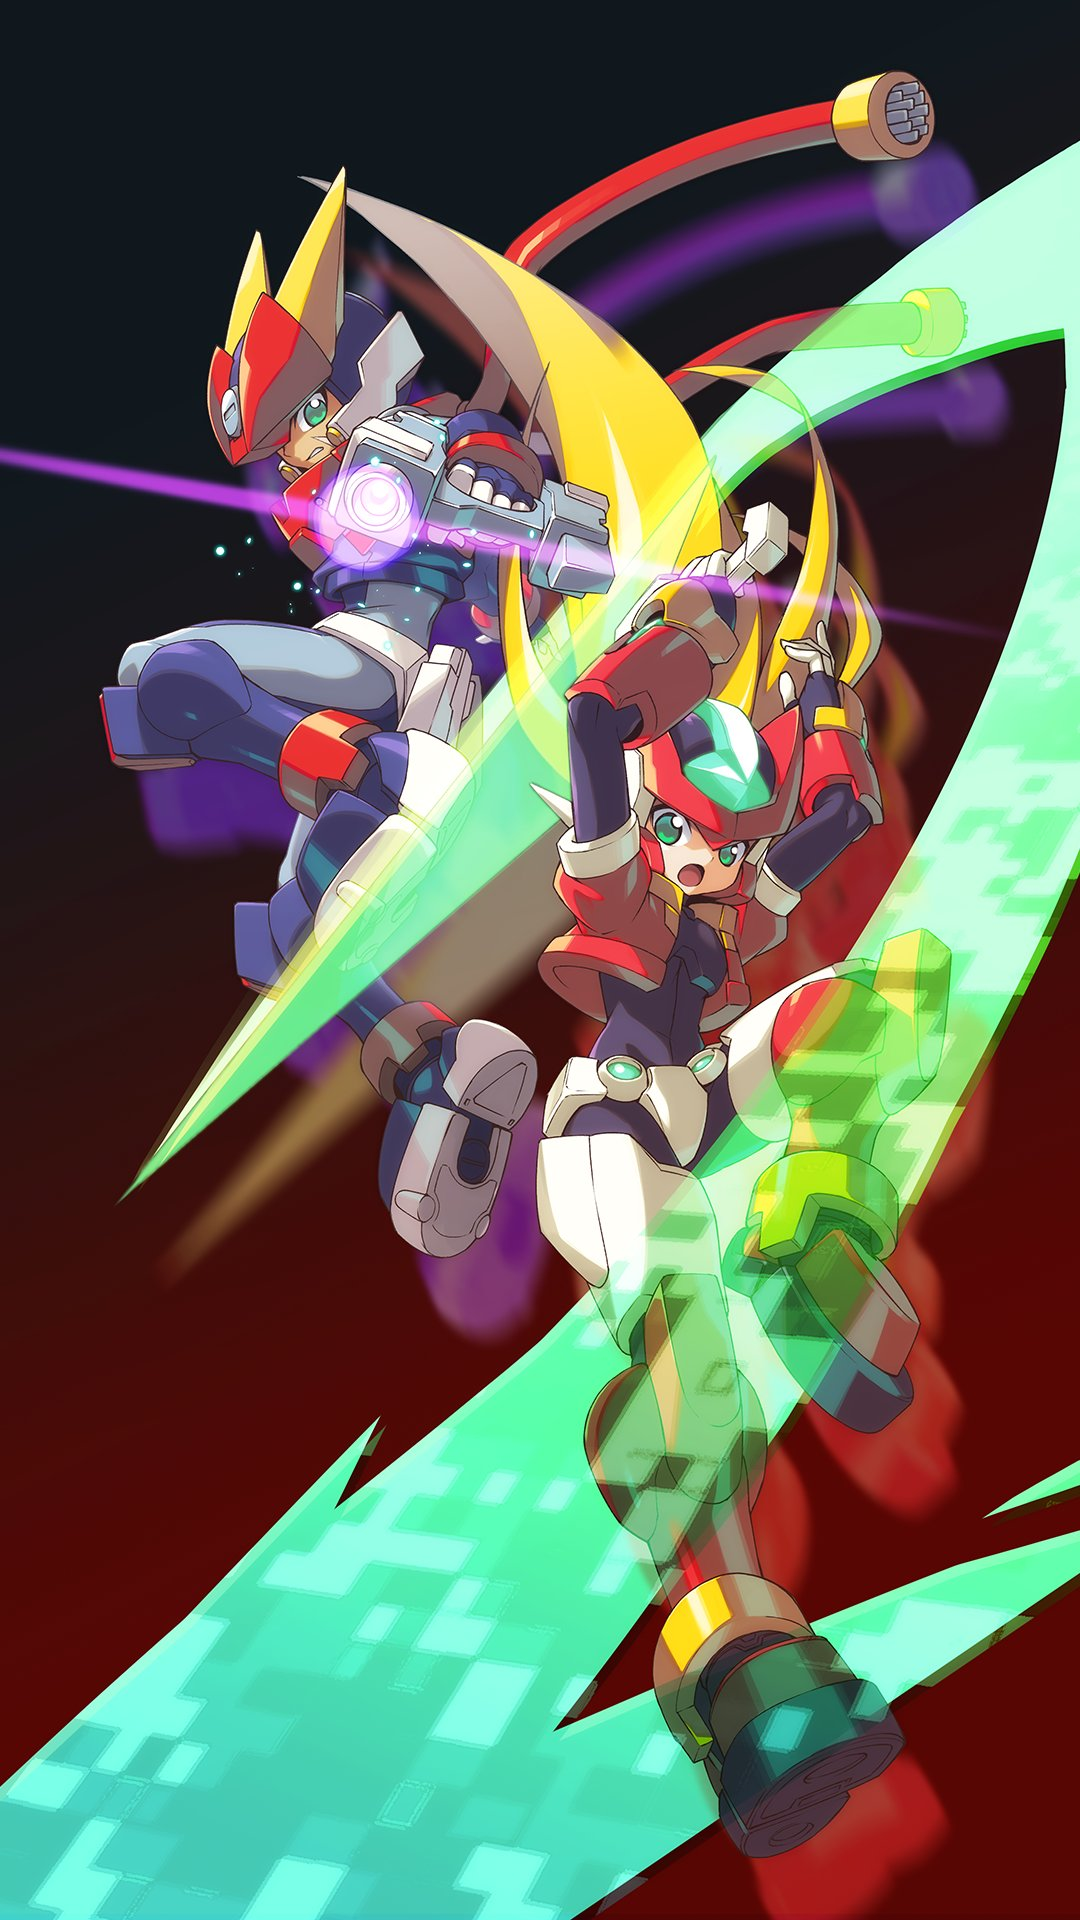 android blonde_hair degarashi_(ponkotsu) energy_sword full_body gradient gradient_background green_eyes grey_(rockman) helmet highres holding holding_weapon jumping long_hair model_zx open_mouth phone_wallpaper power_armor rockman rockman_zx simple_background sword weapon